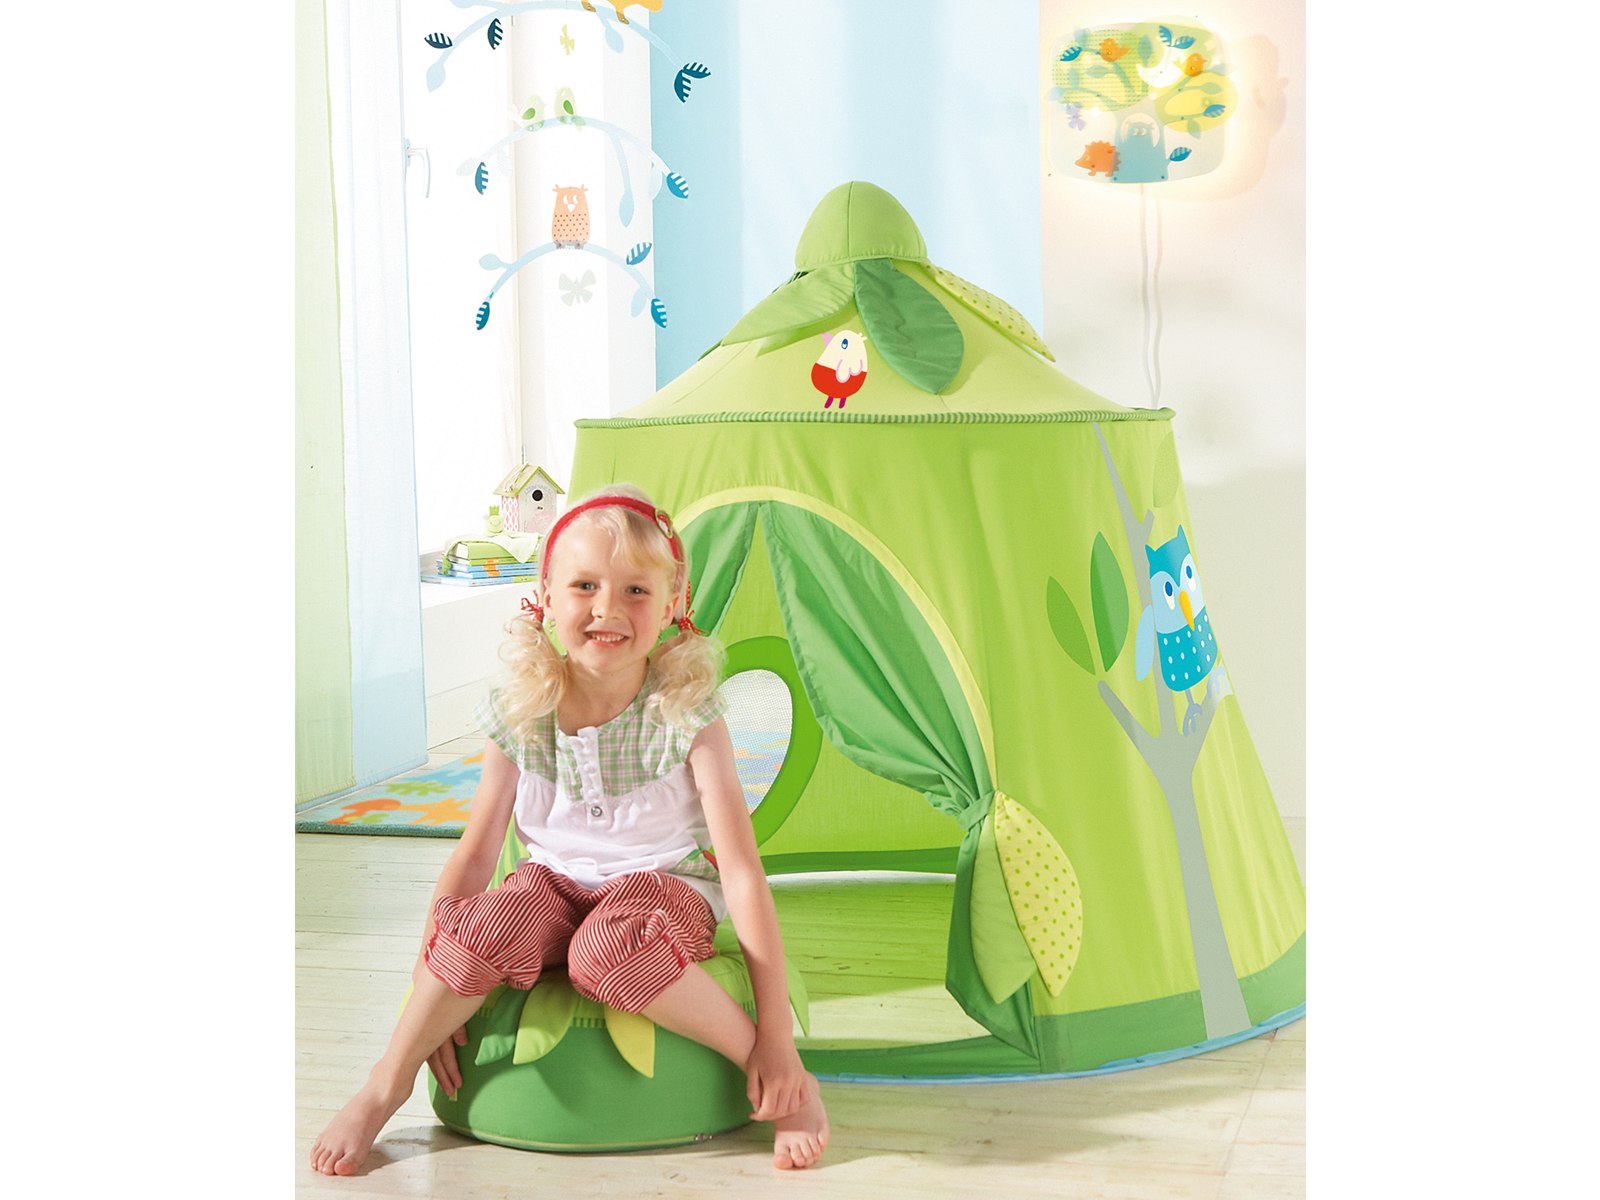 Haba Magic Forest Play Tent - Buy Online - Playhouse of Dreams  - 1